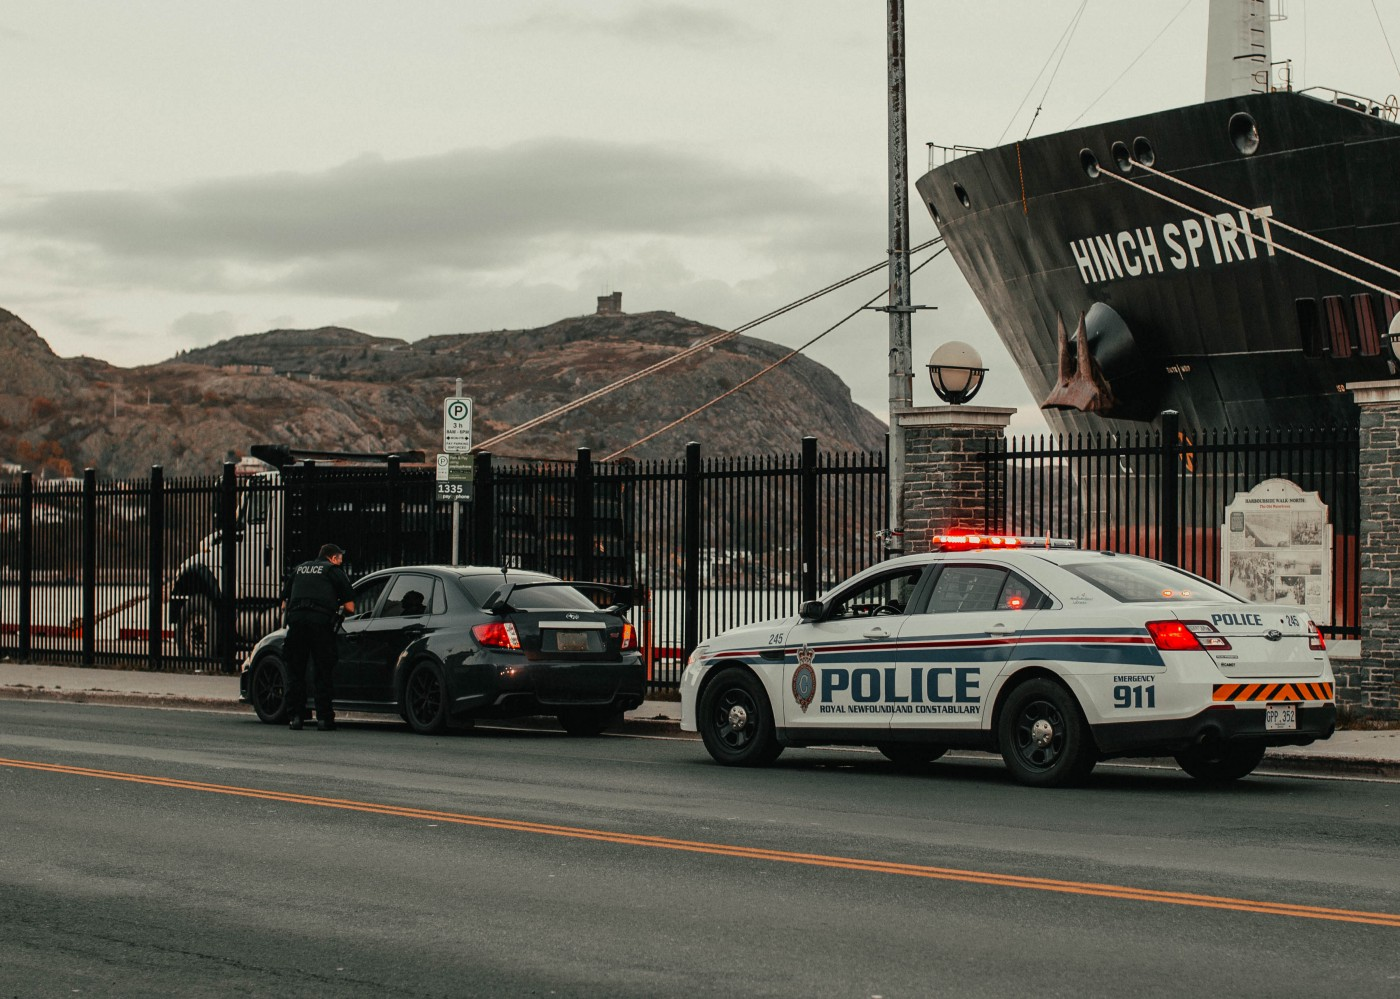 """Police officer questioning a stopped motorist, incidentally with his car pulled over in front of a large ship """"Hinch Spirit"""" and lovely cliffs in the background"""